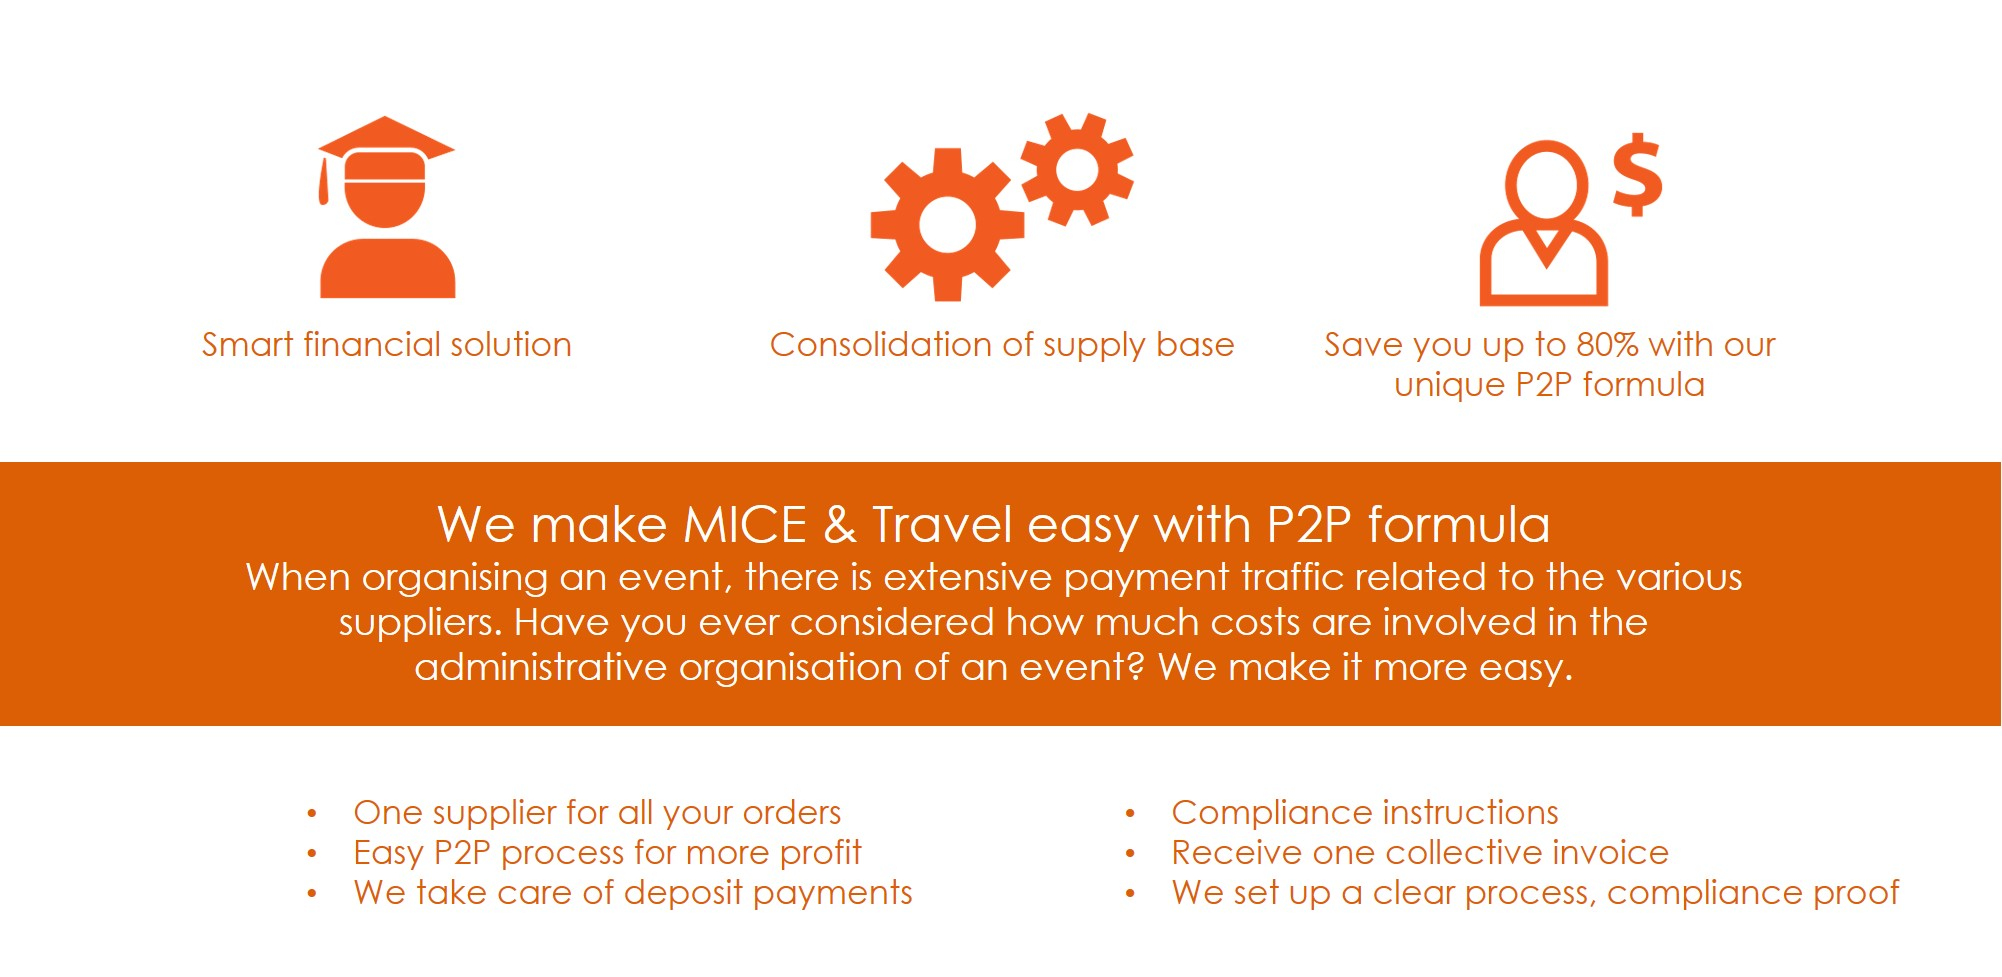 Purchase to Pay management, our unique service When organising an event, there is extensive payment traffic related to the various suppliers. Have you ever considered how much costs are involved in the administrative organisation of an event? Or how much it costs are involved with creating a new creditor in your organisation? It may be more than expected! This is one of the reasons why working with Event1001-bookings can save you up to 80%.